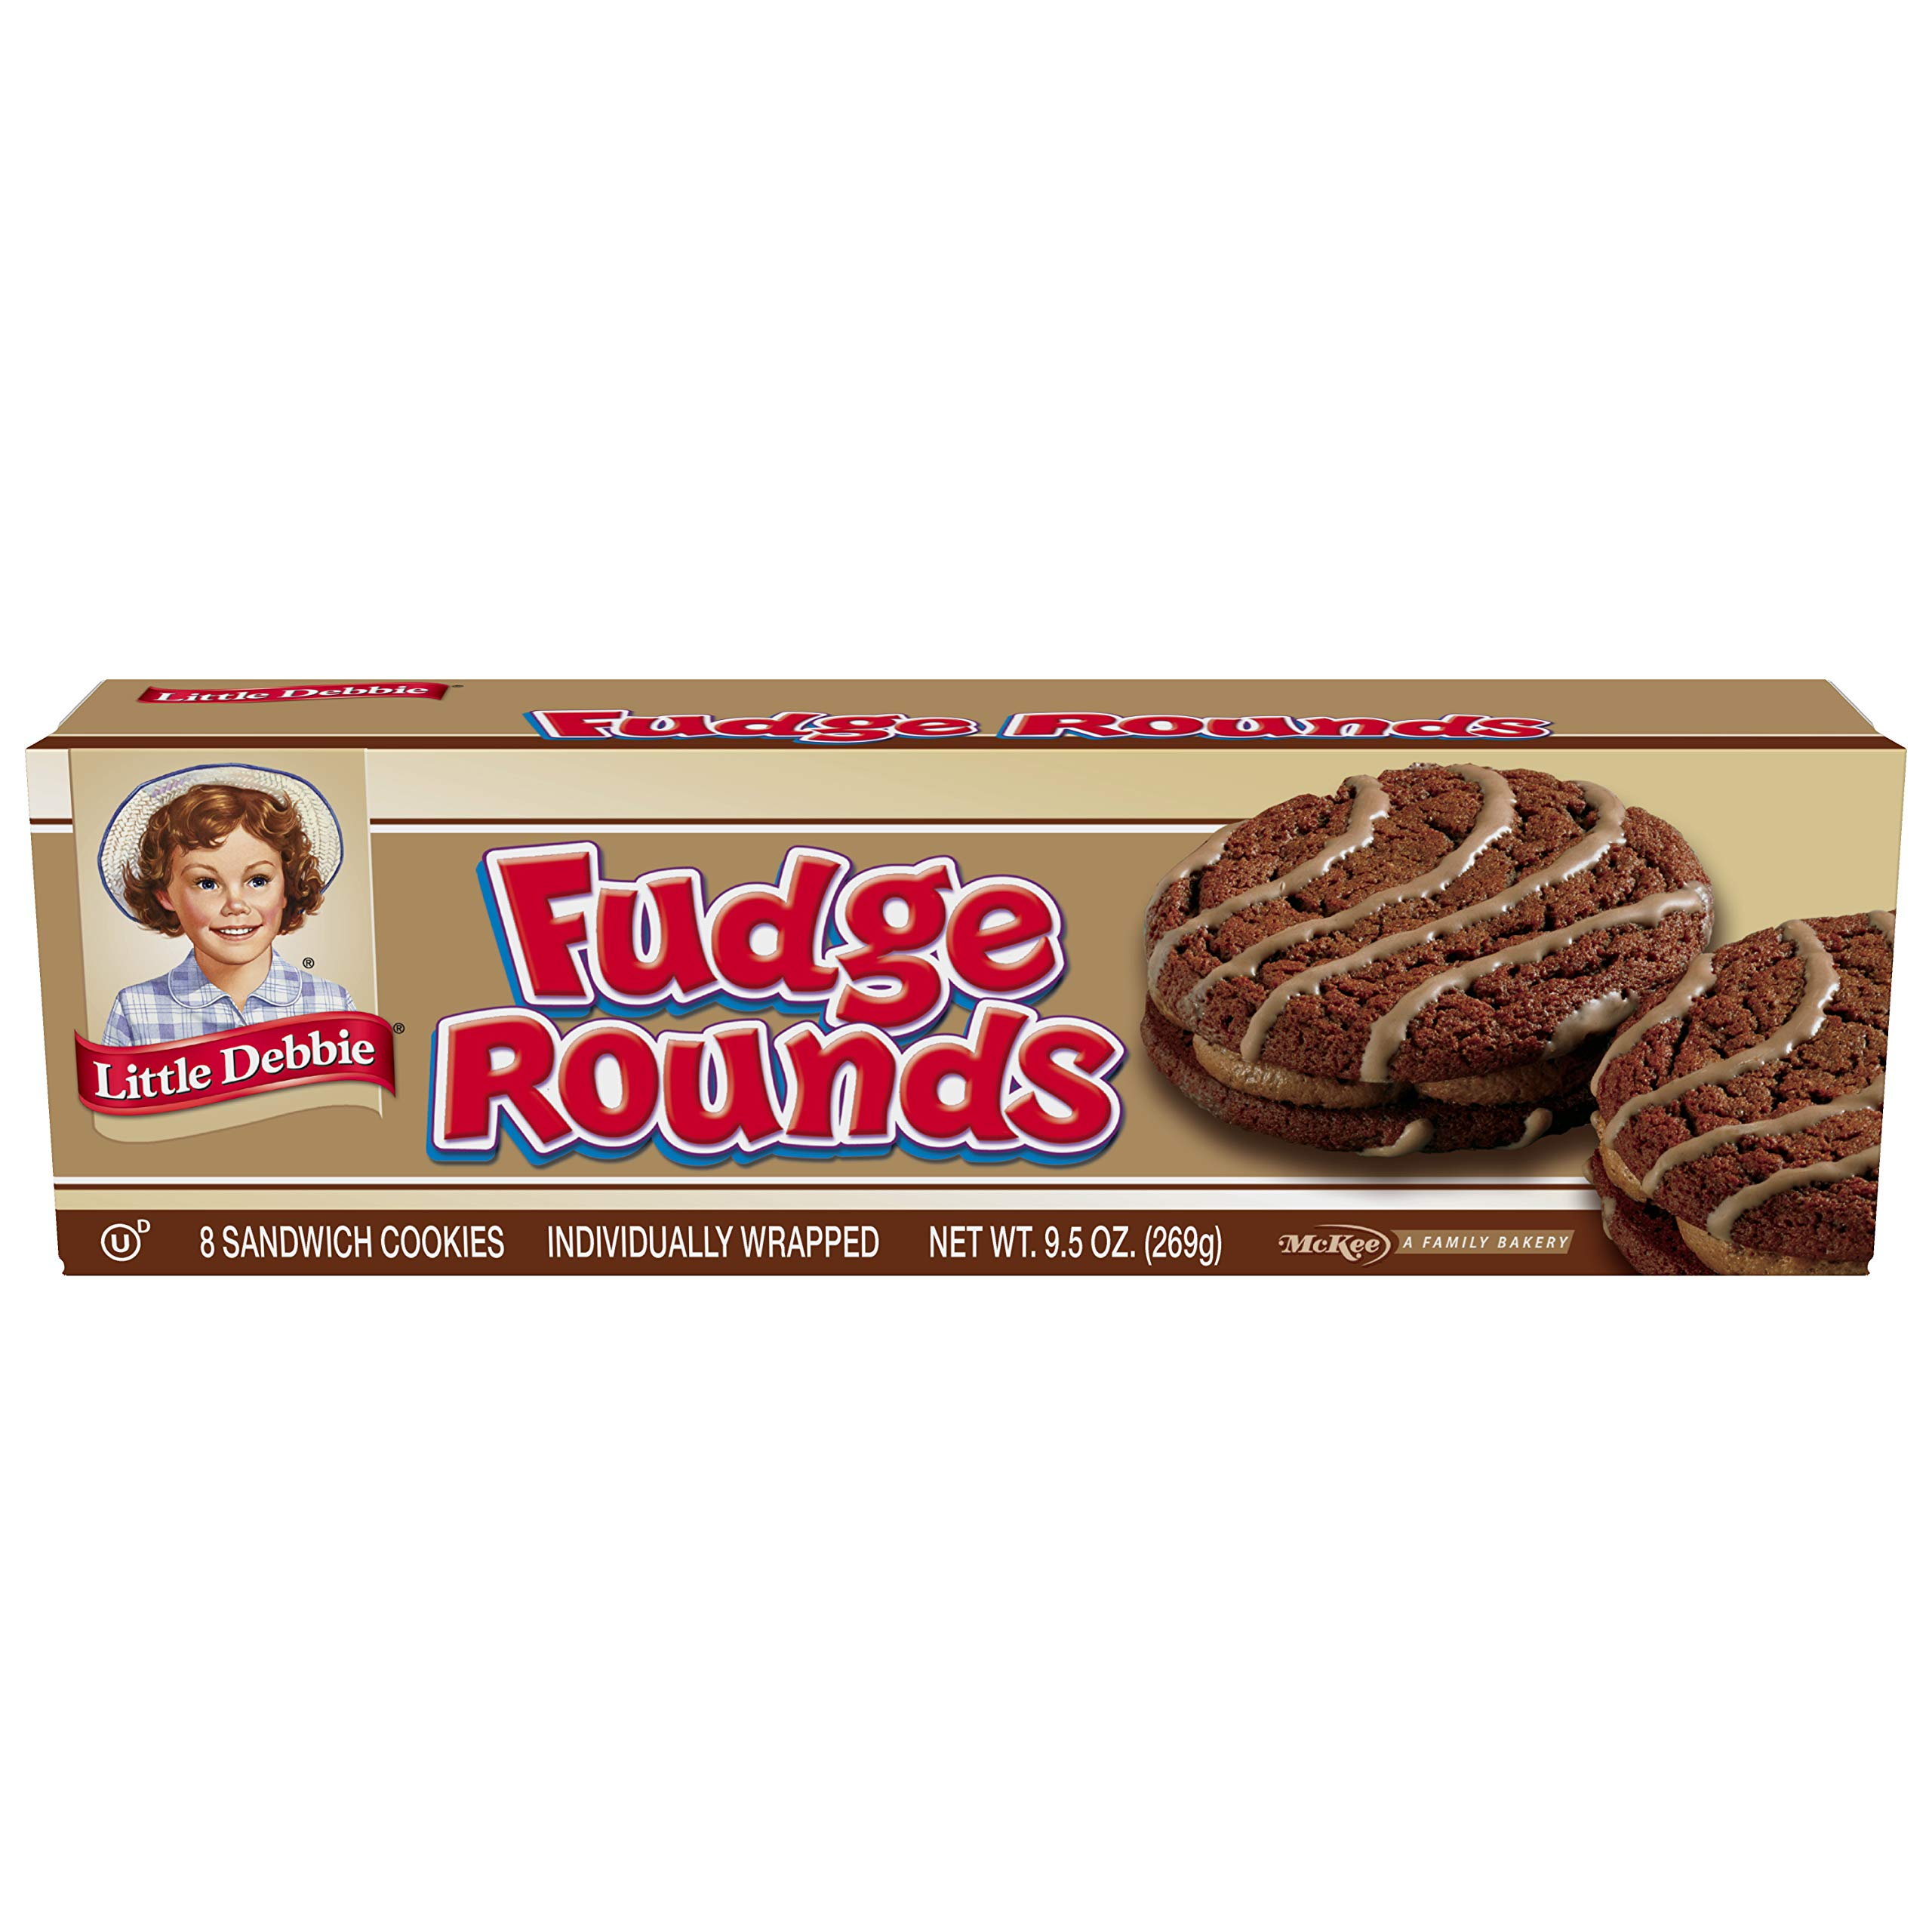 Little Debbie Fudge Rounds - 4 Pack by Little Debbie